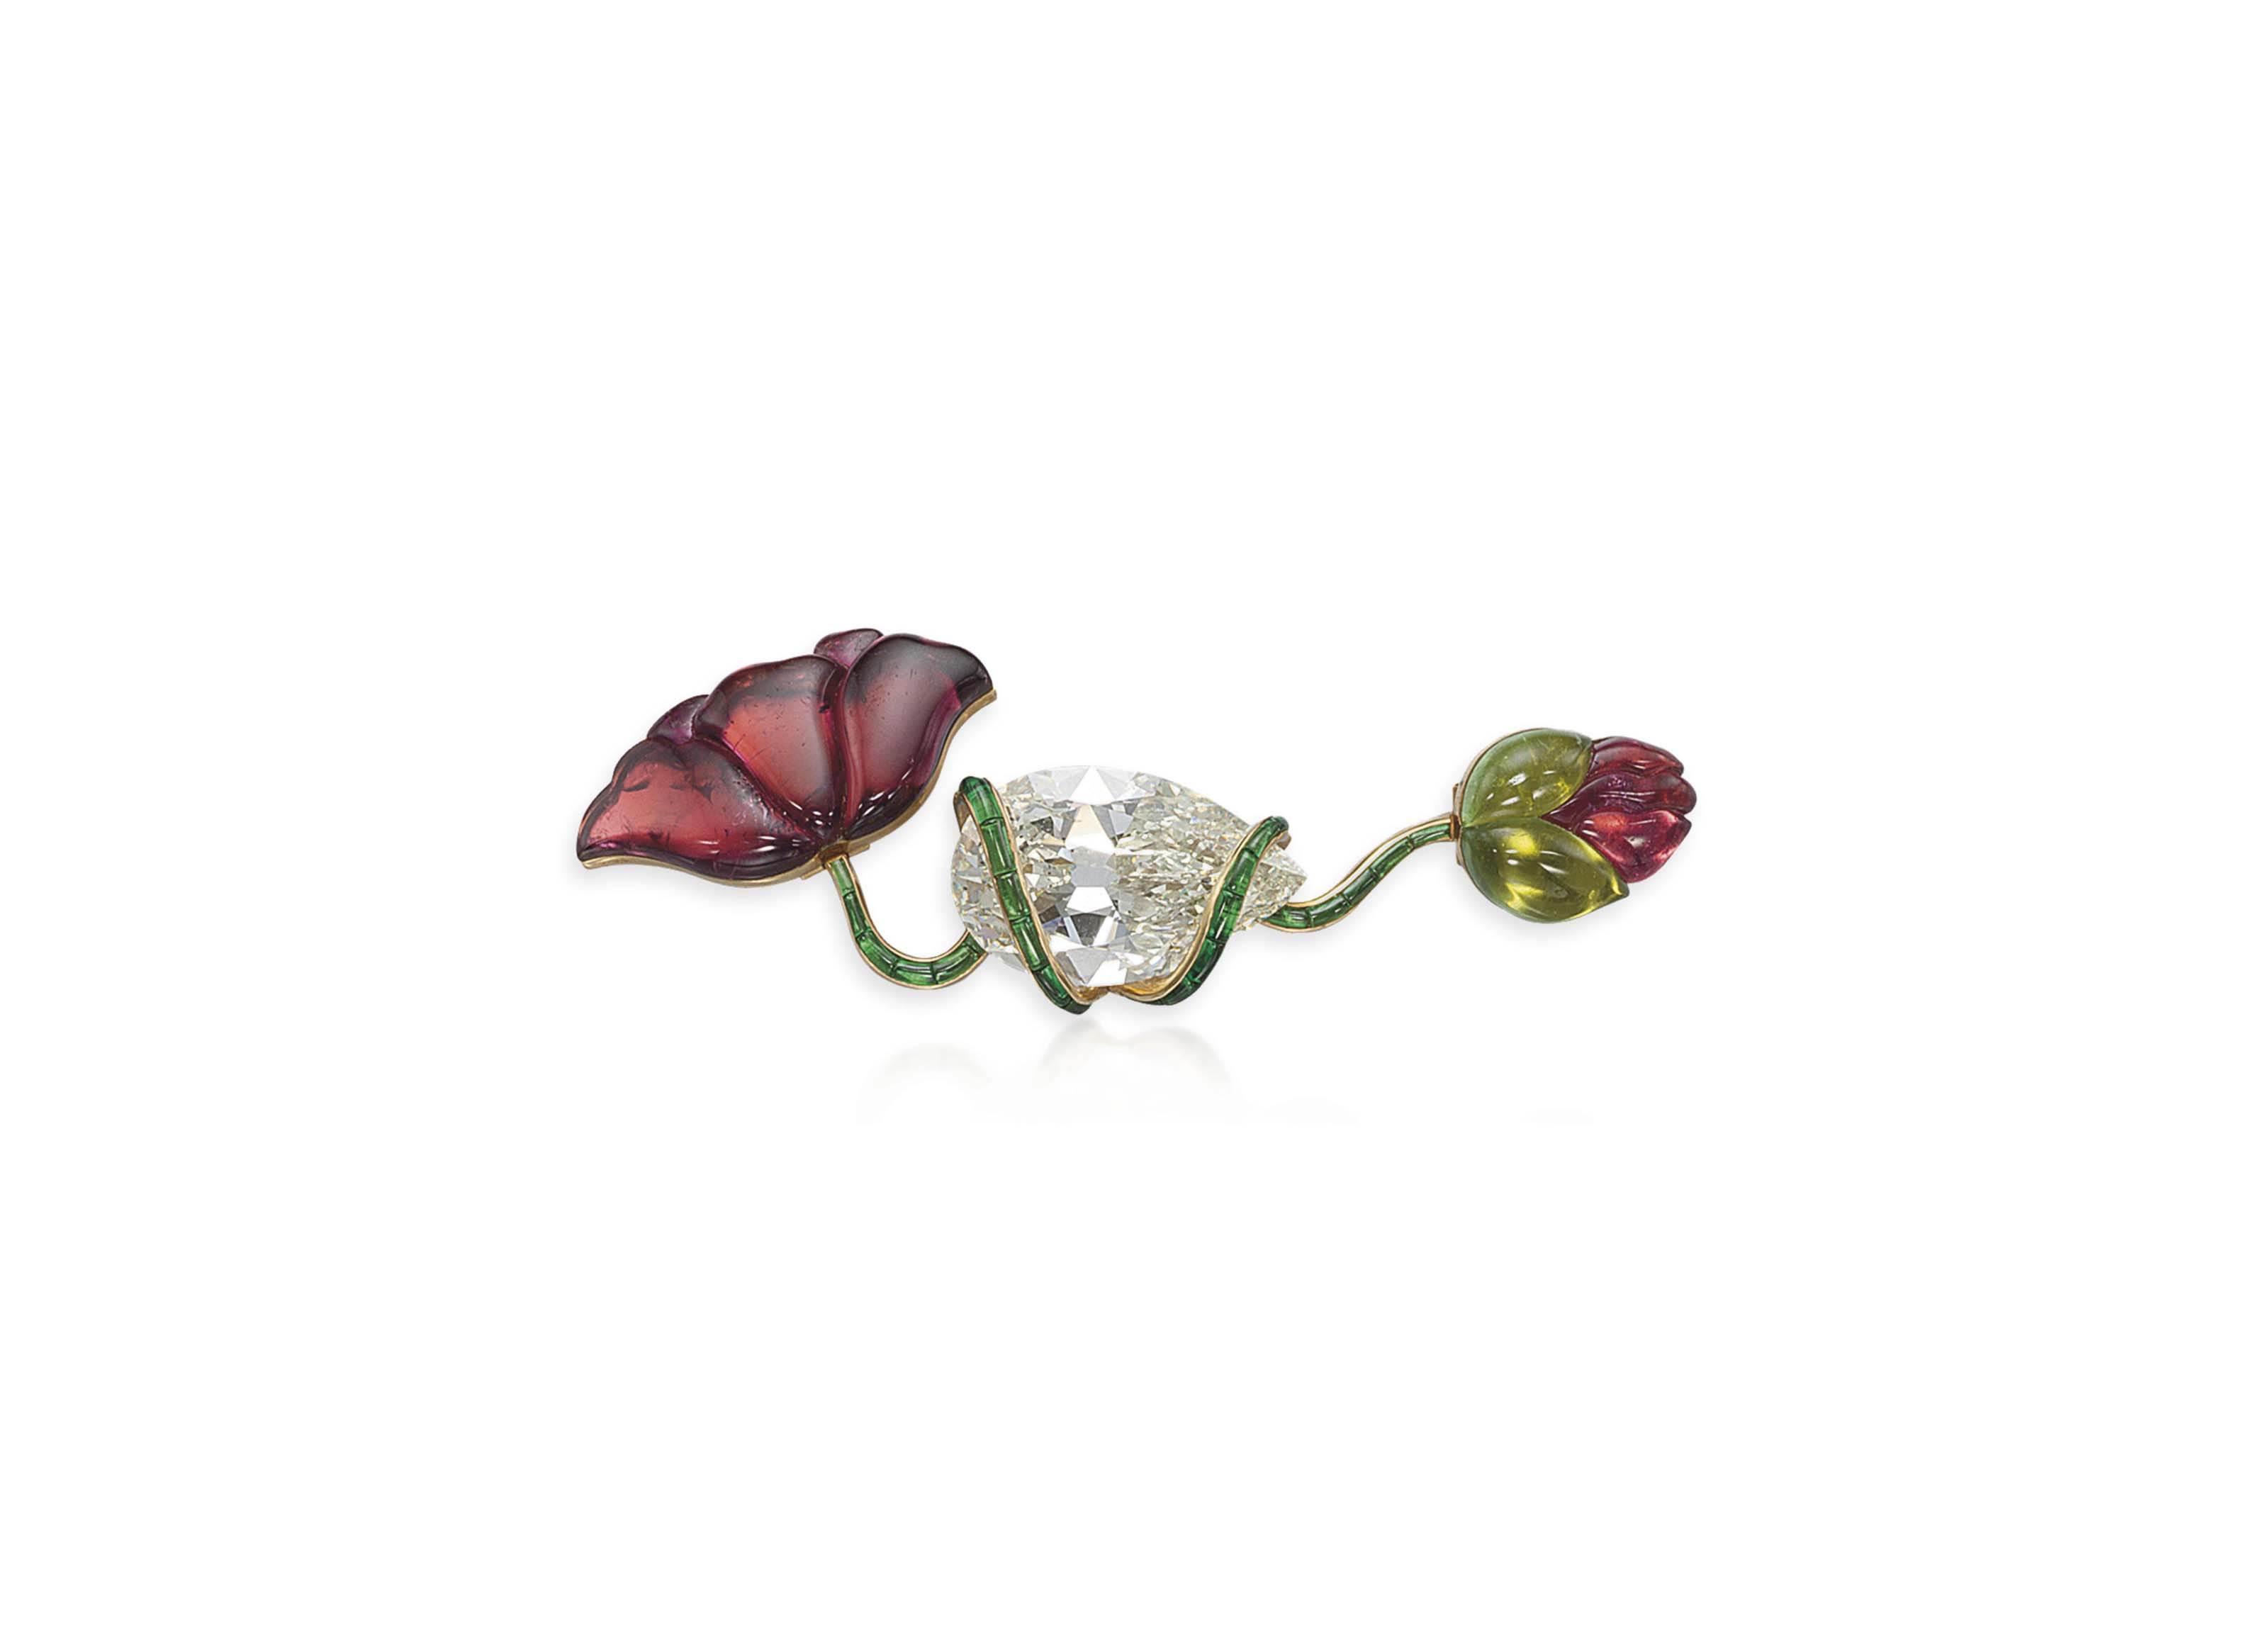 A TOURMALINE AND DIAMOND FLOWER BROOCH, BY JAR